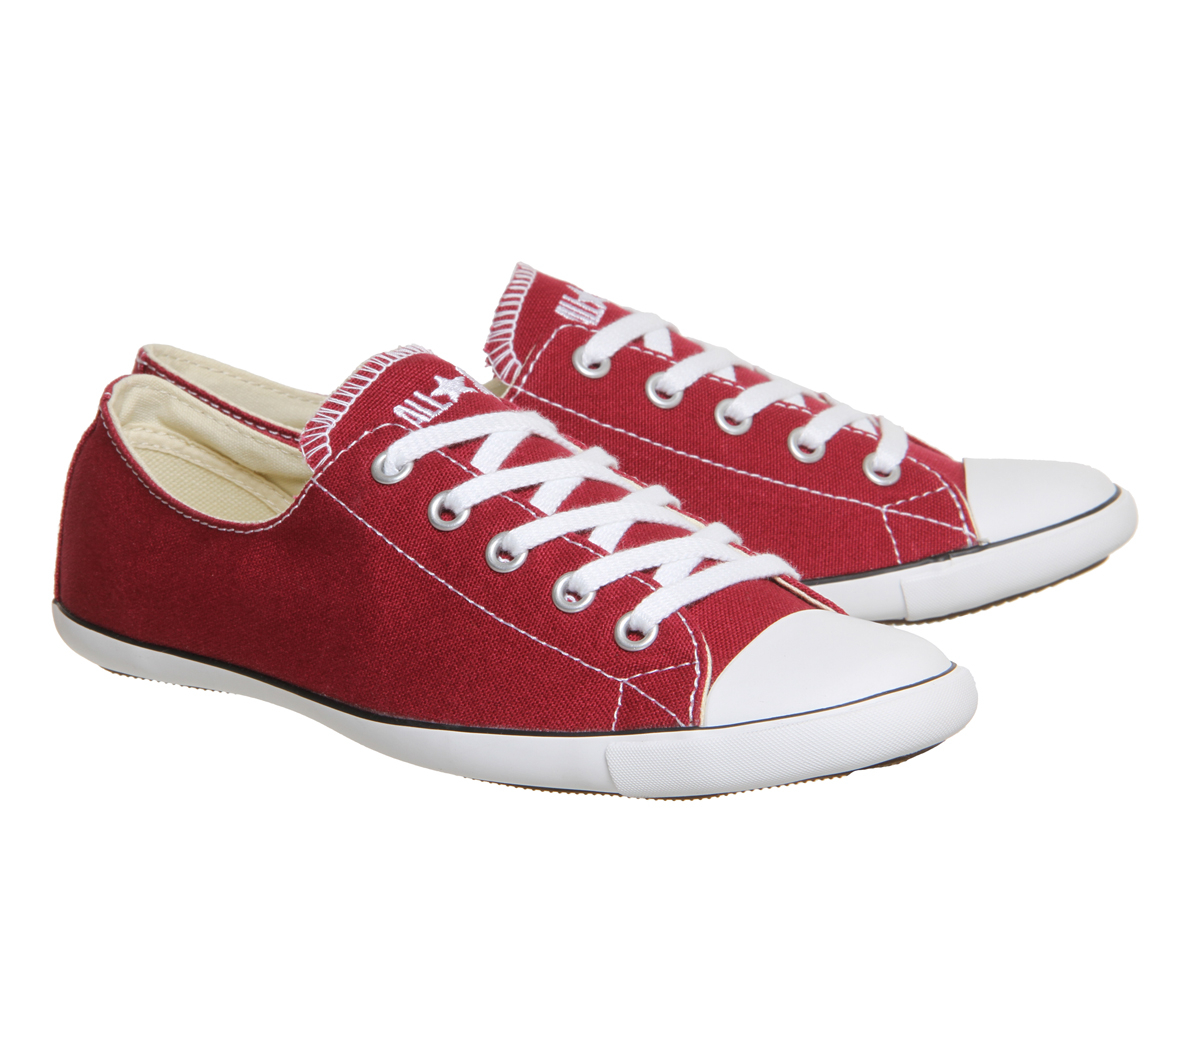 ebf5dc0bb8b4 Gallery. Women s Converse One Star ...